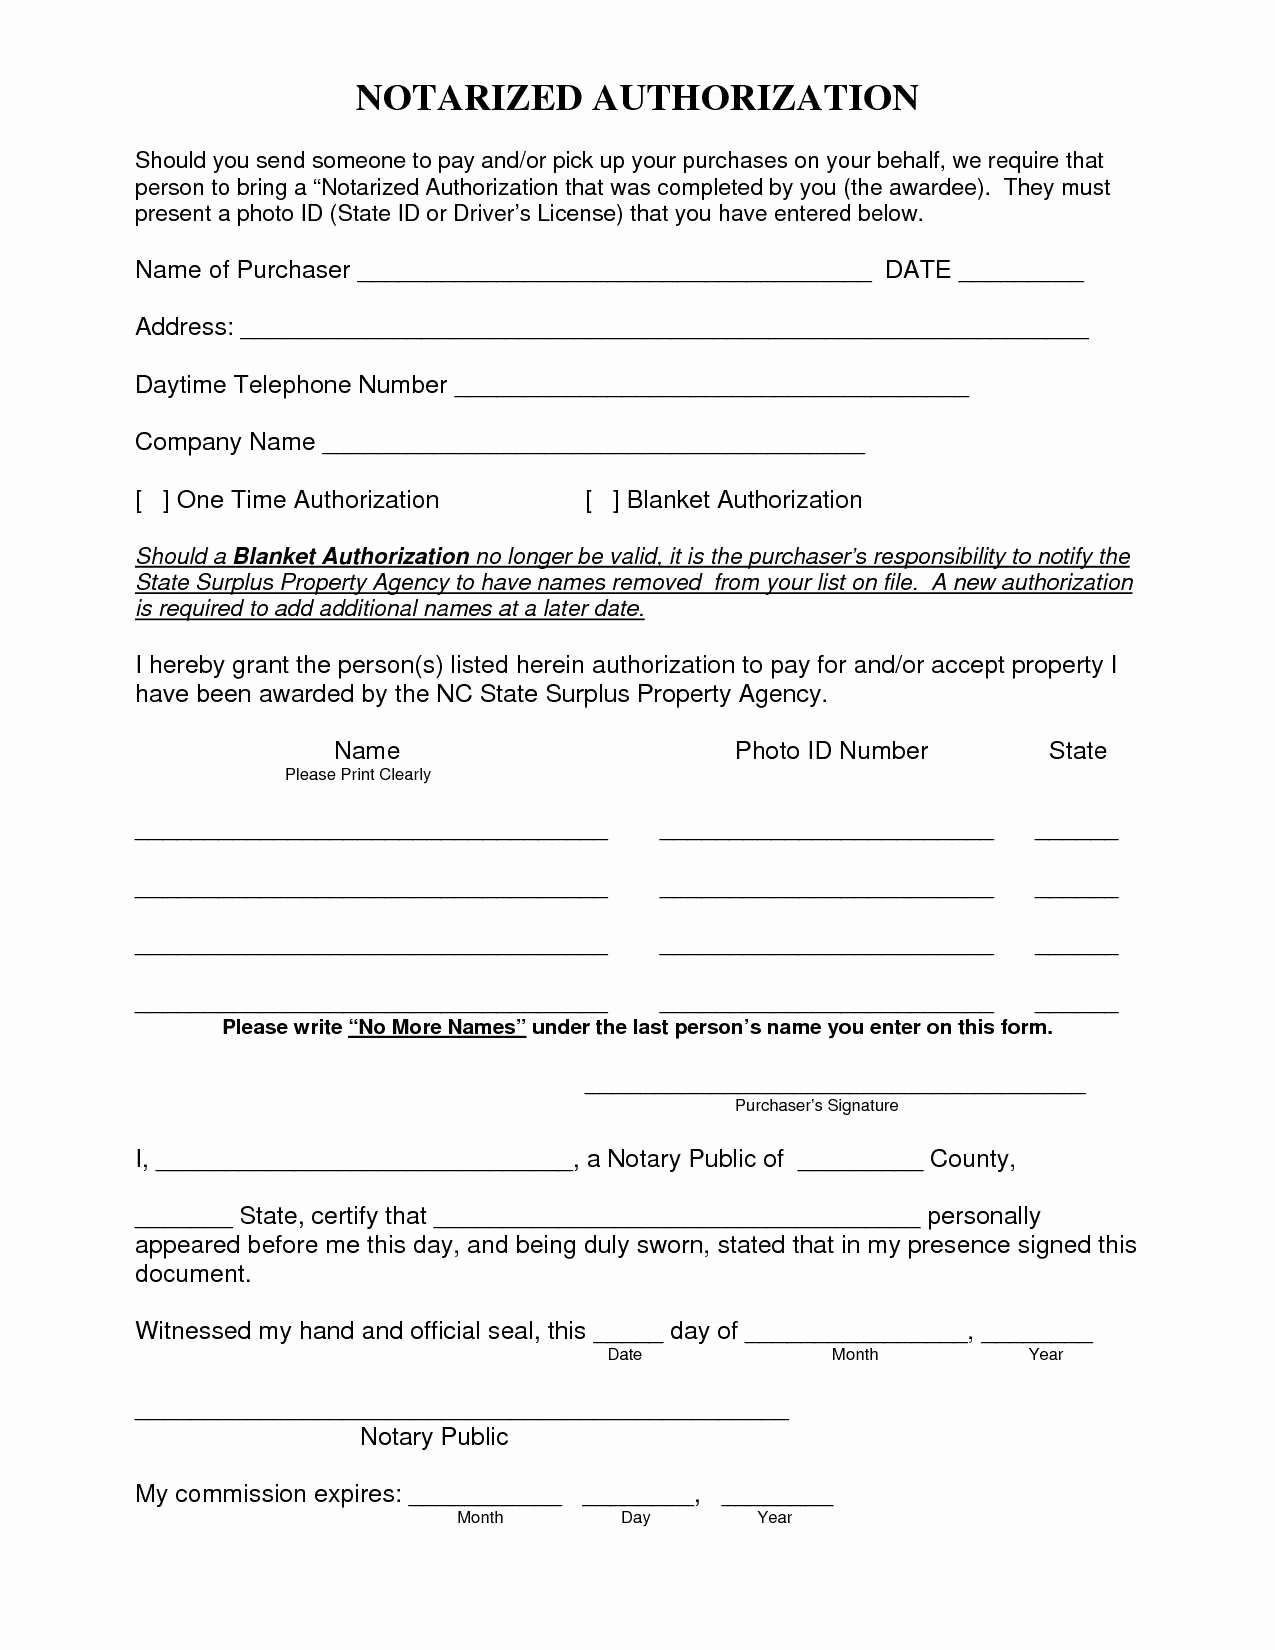 Child Visitation Agreement Template Elegant Notarized Custody Agreement Template Special 11 Best Child